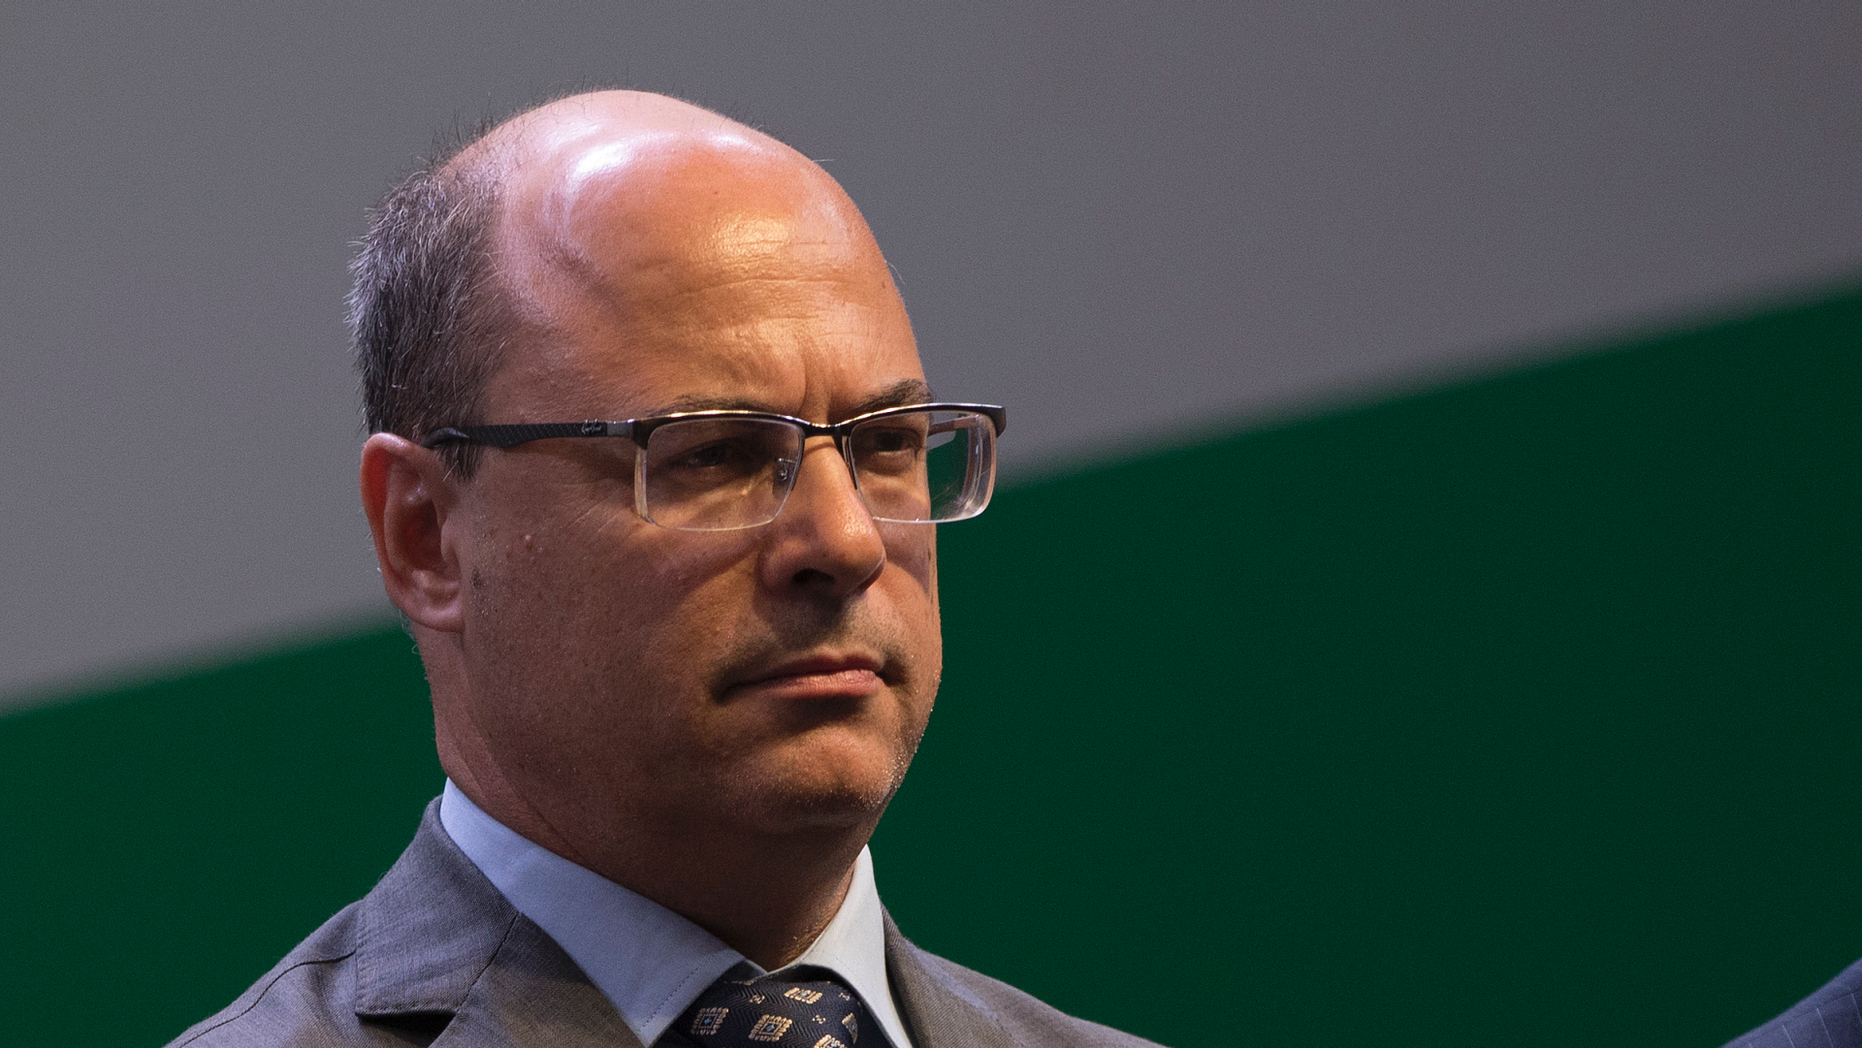 """FILE - In this Jan. 3, 2019 file photo, Rio de Janeiro Gov. Wilson Witzel attends the swearing-in ceremony for the new president of state-run oil company Petrobras, Roberto Castello Branco, in Rio de Janeiro, Brazil. A human rights official and community activists are criticizing Witzel for saying on Friday, June 14, that a missile could be sent to """"blow up"""" drug traffickers in a local slum.  (AP Photo/Leo Correa, File)"""